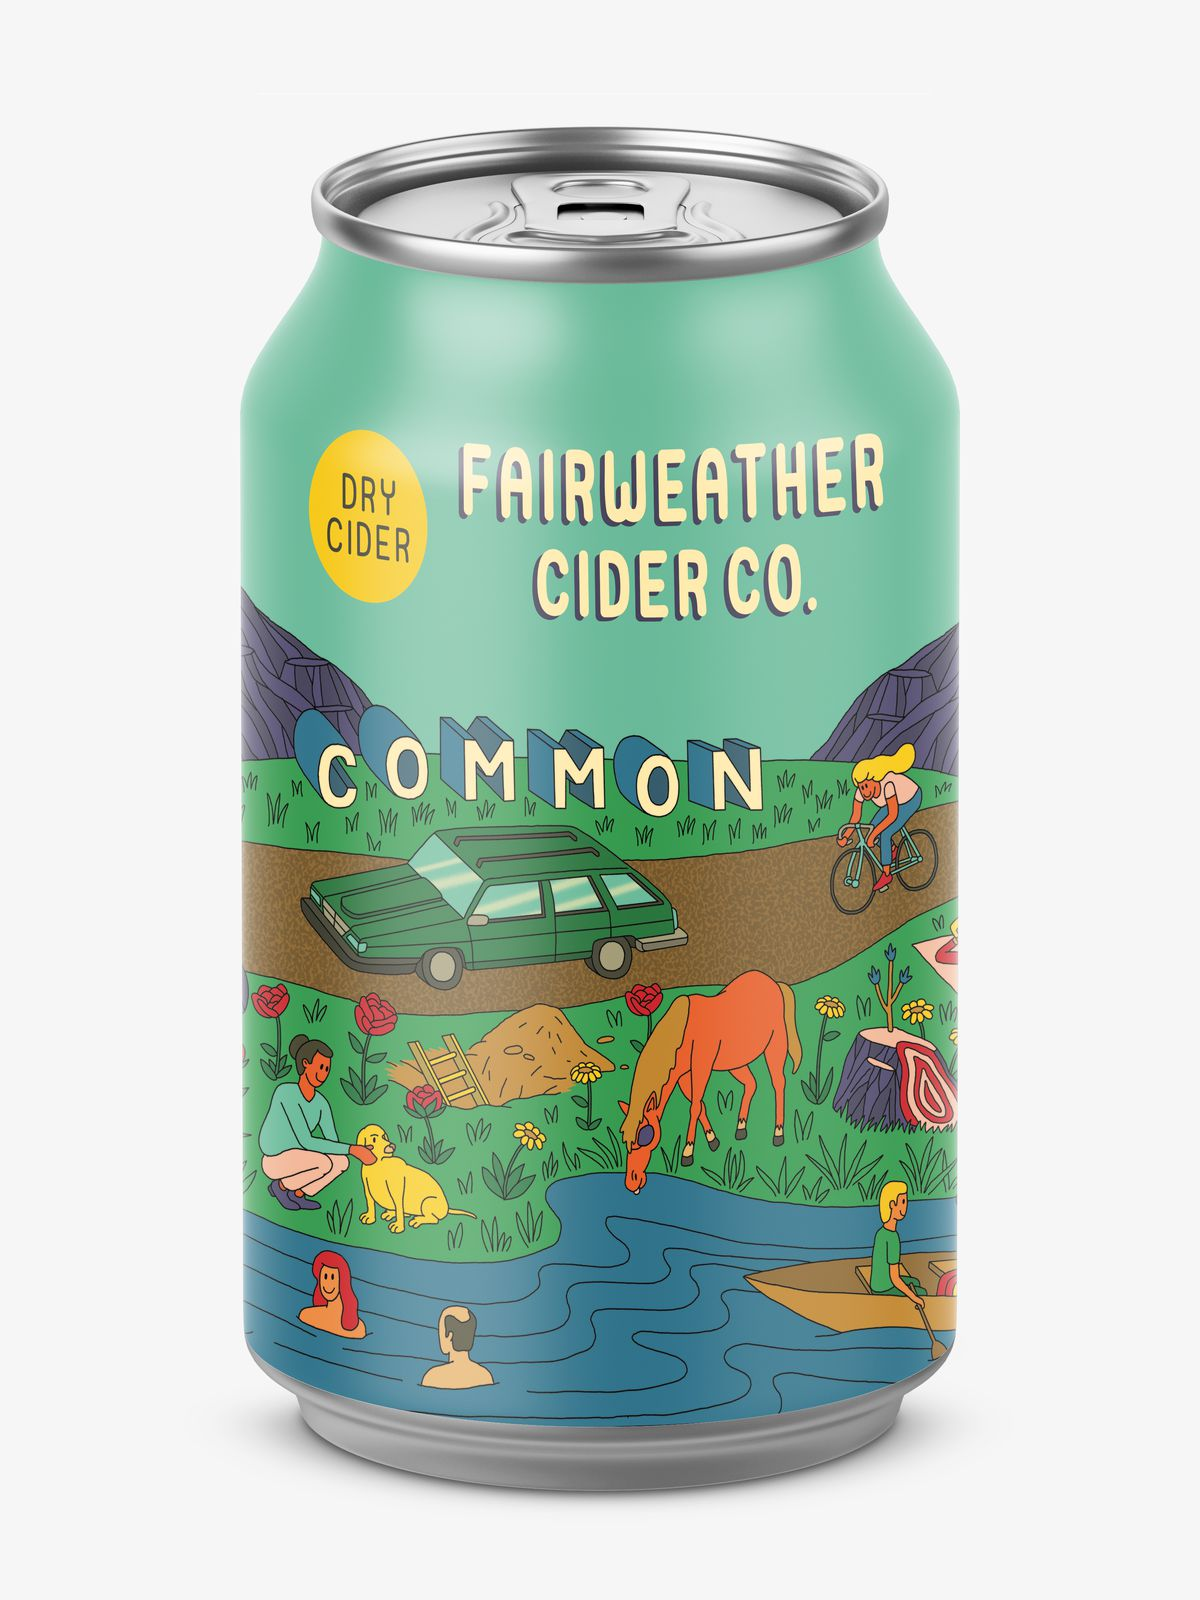 Fairweather Cider Co.'s Common cider can